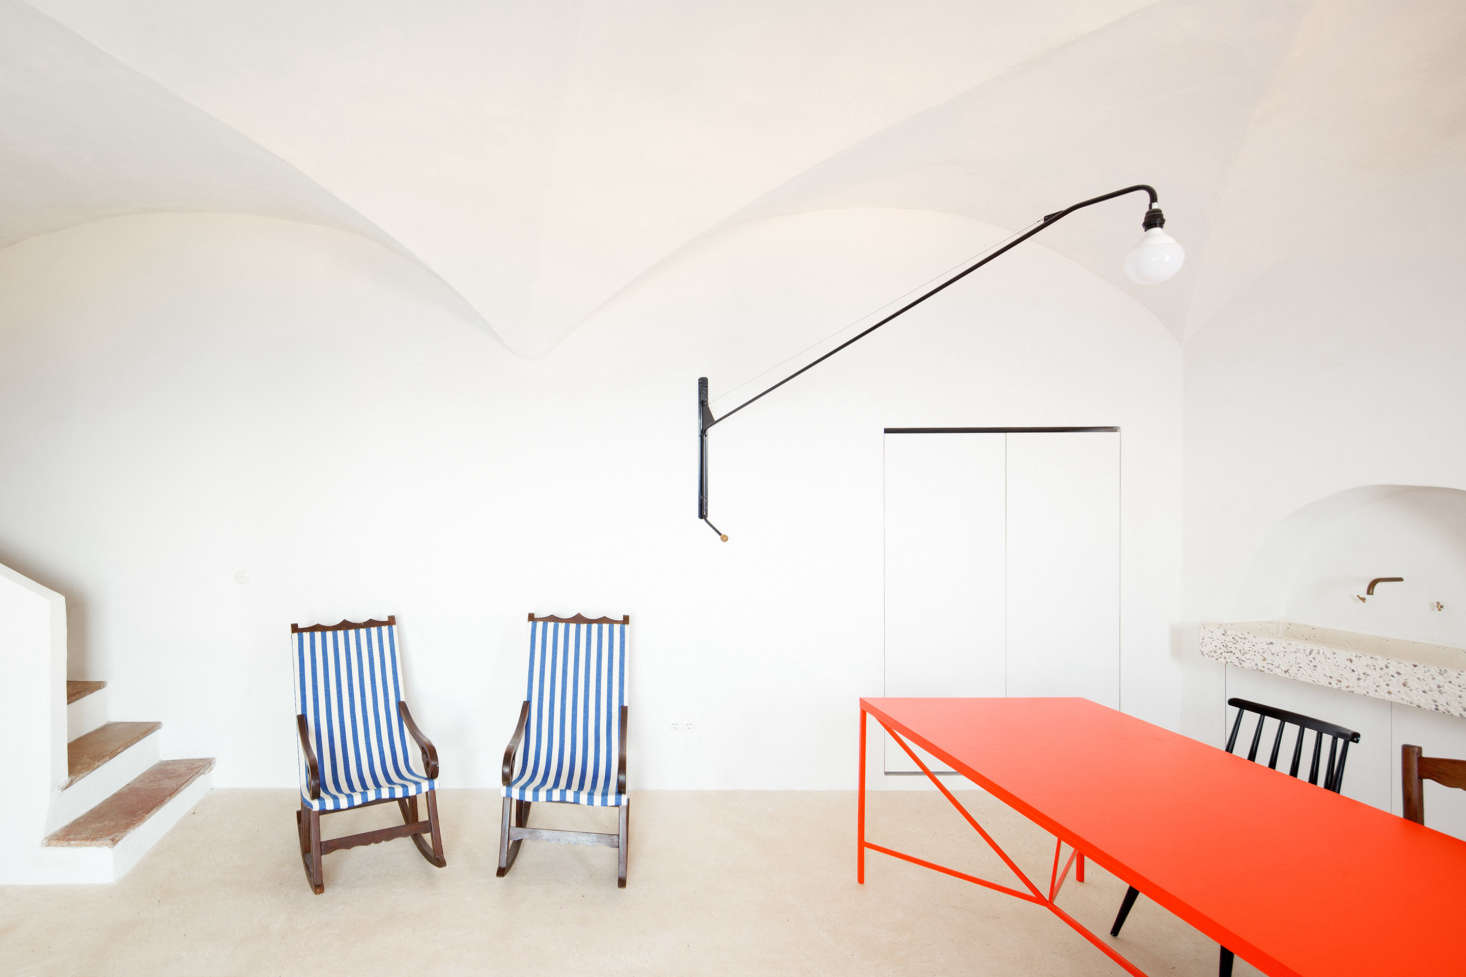 Inside, the effect is bright and beach-like. With two traditional Mallorcan rocking chairs—found in the house and reupholstered in blue and white striped fabric—and a traditional lime floor called trispolthat feels cool under bare feet, the interiors have the air of summer about them.